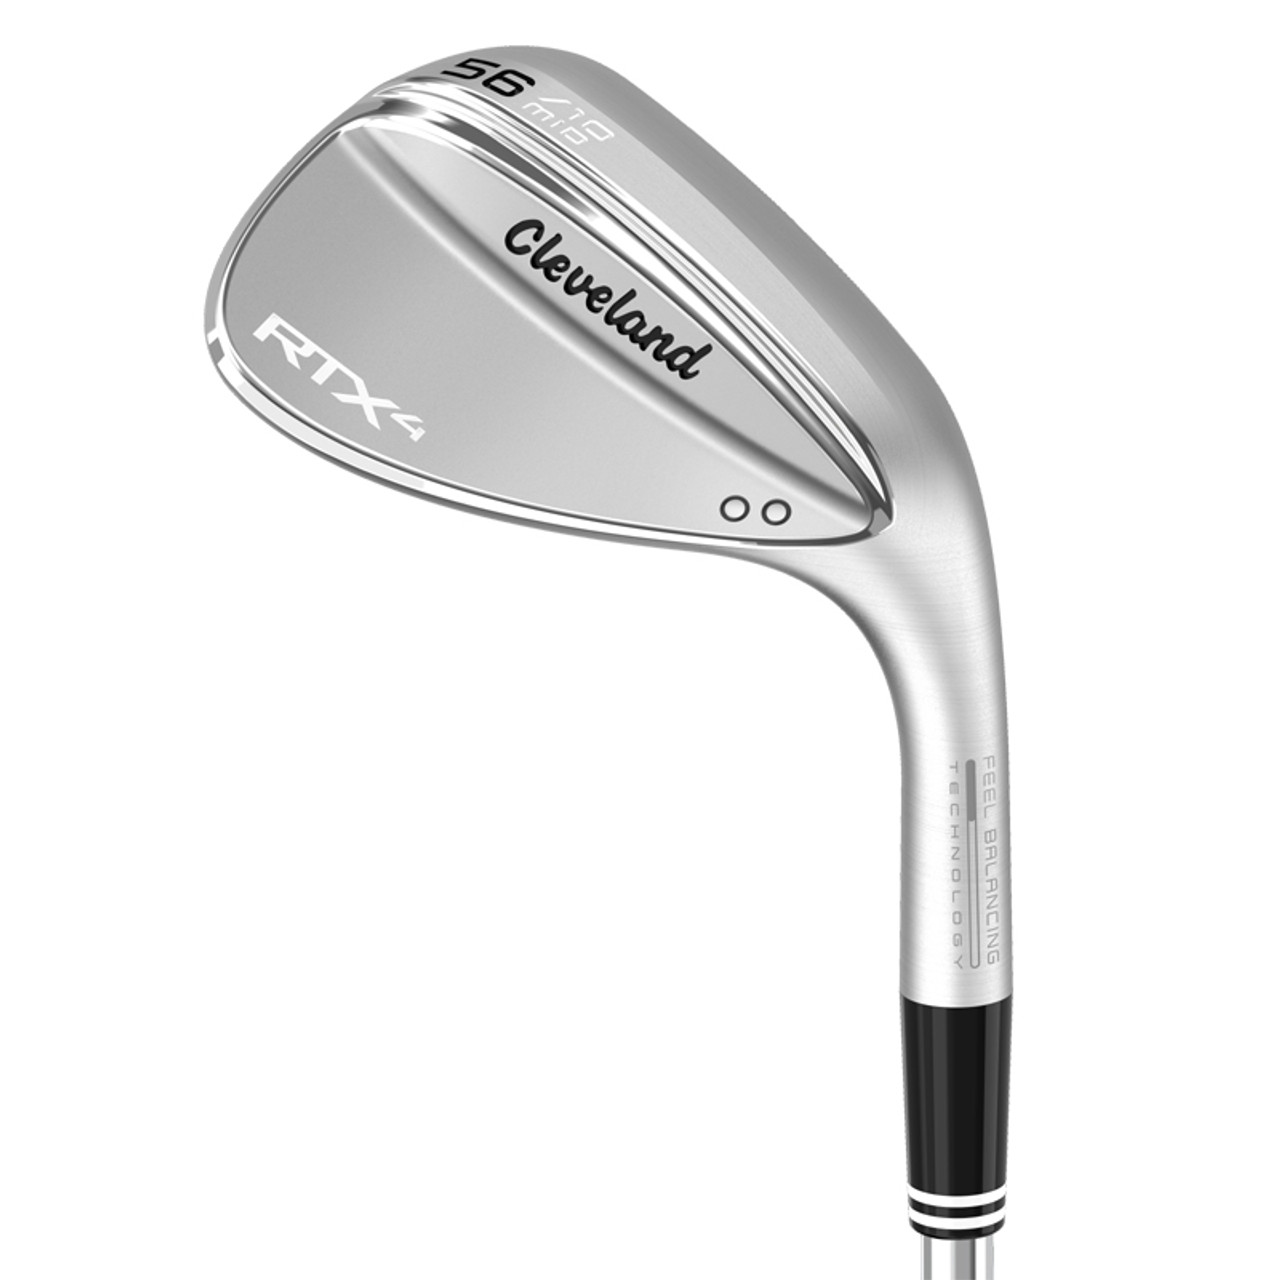 Cleveland RTX-4 Tour Satin Wedge Clearance